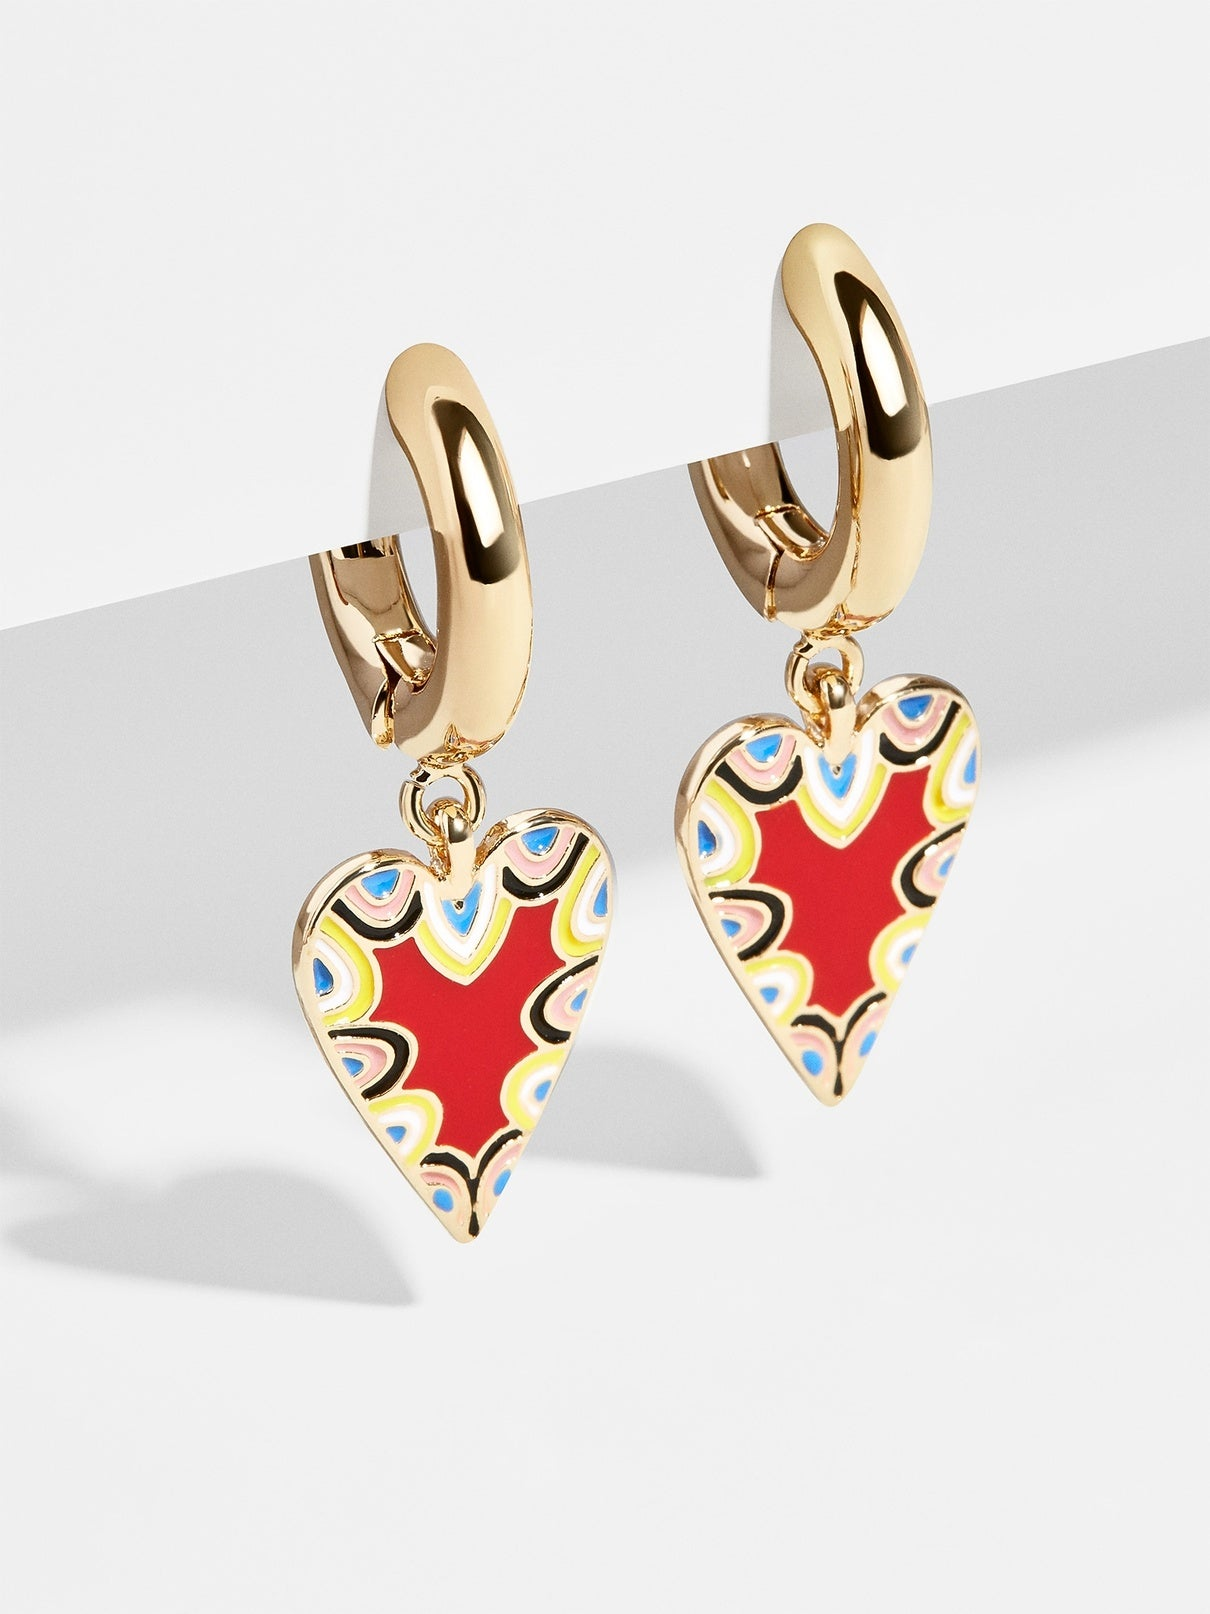 Baublebar Vida Earrings